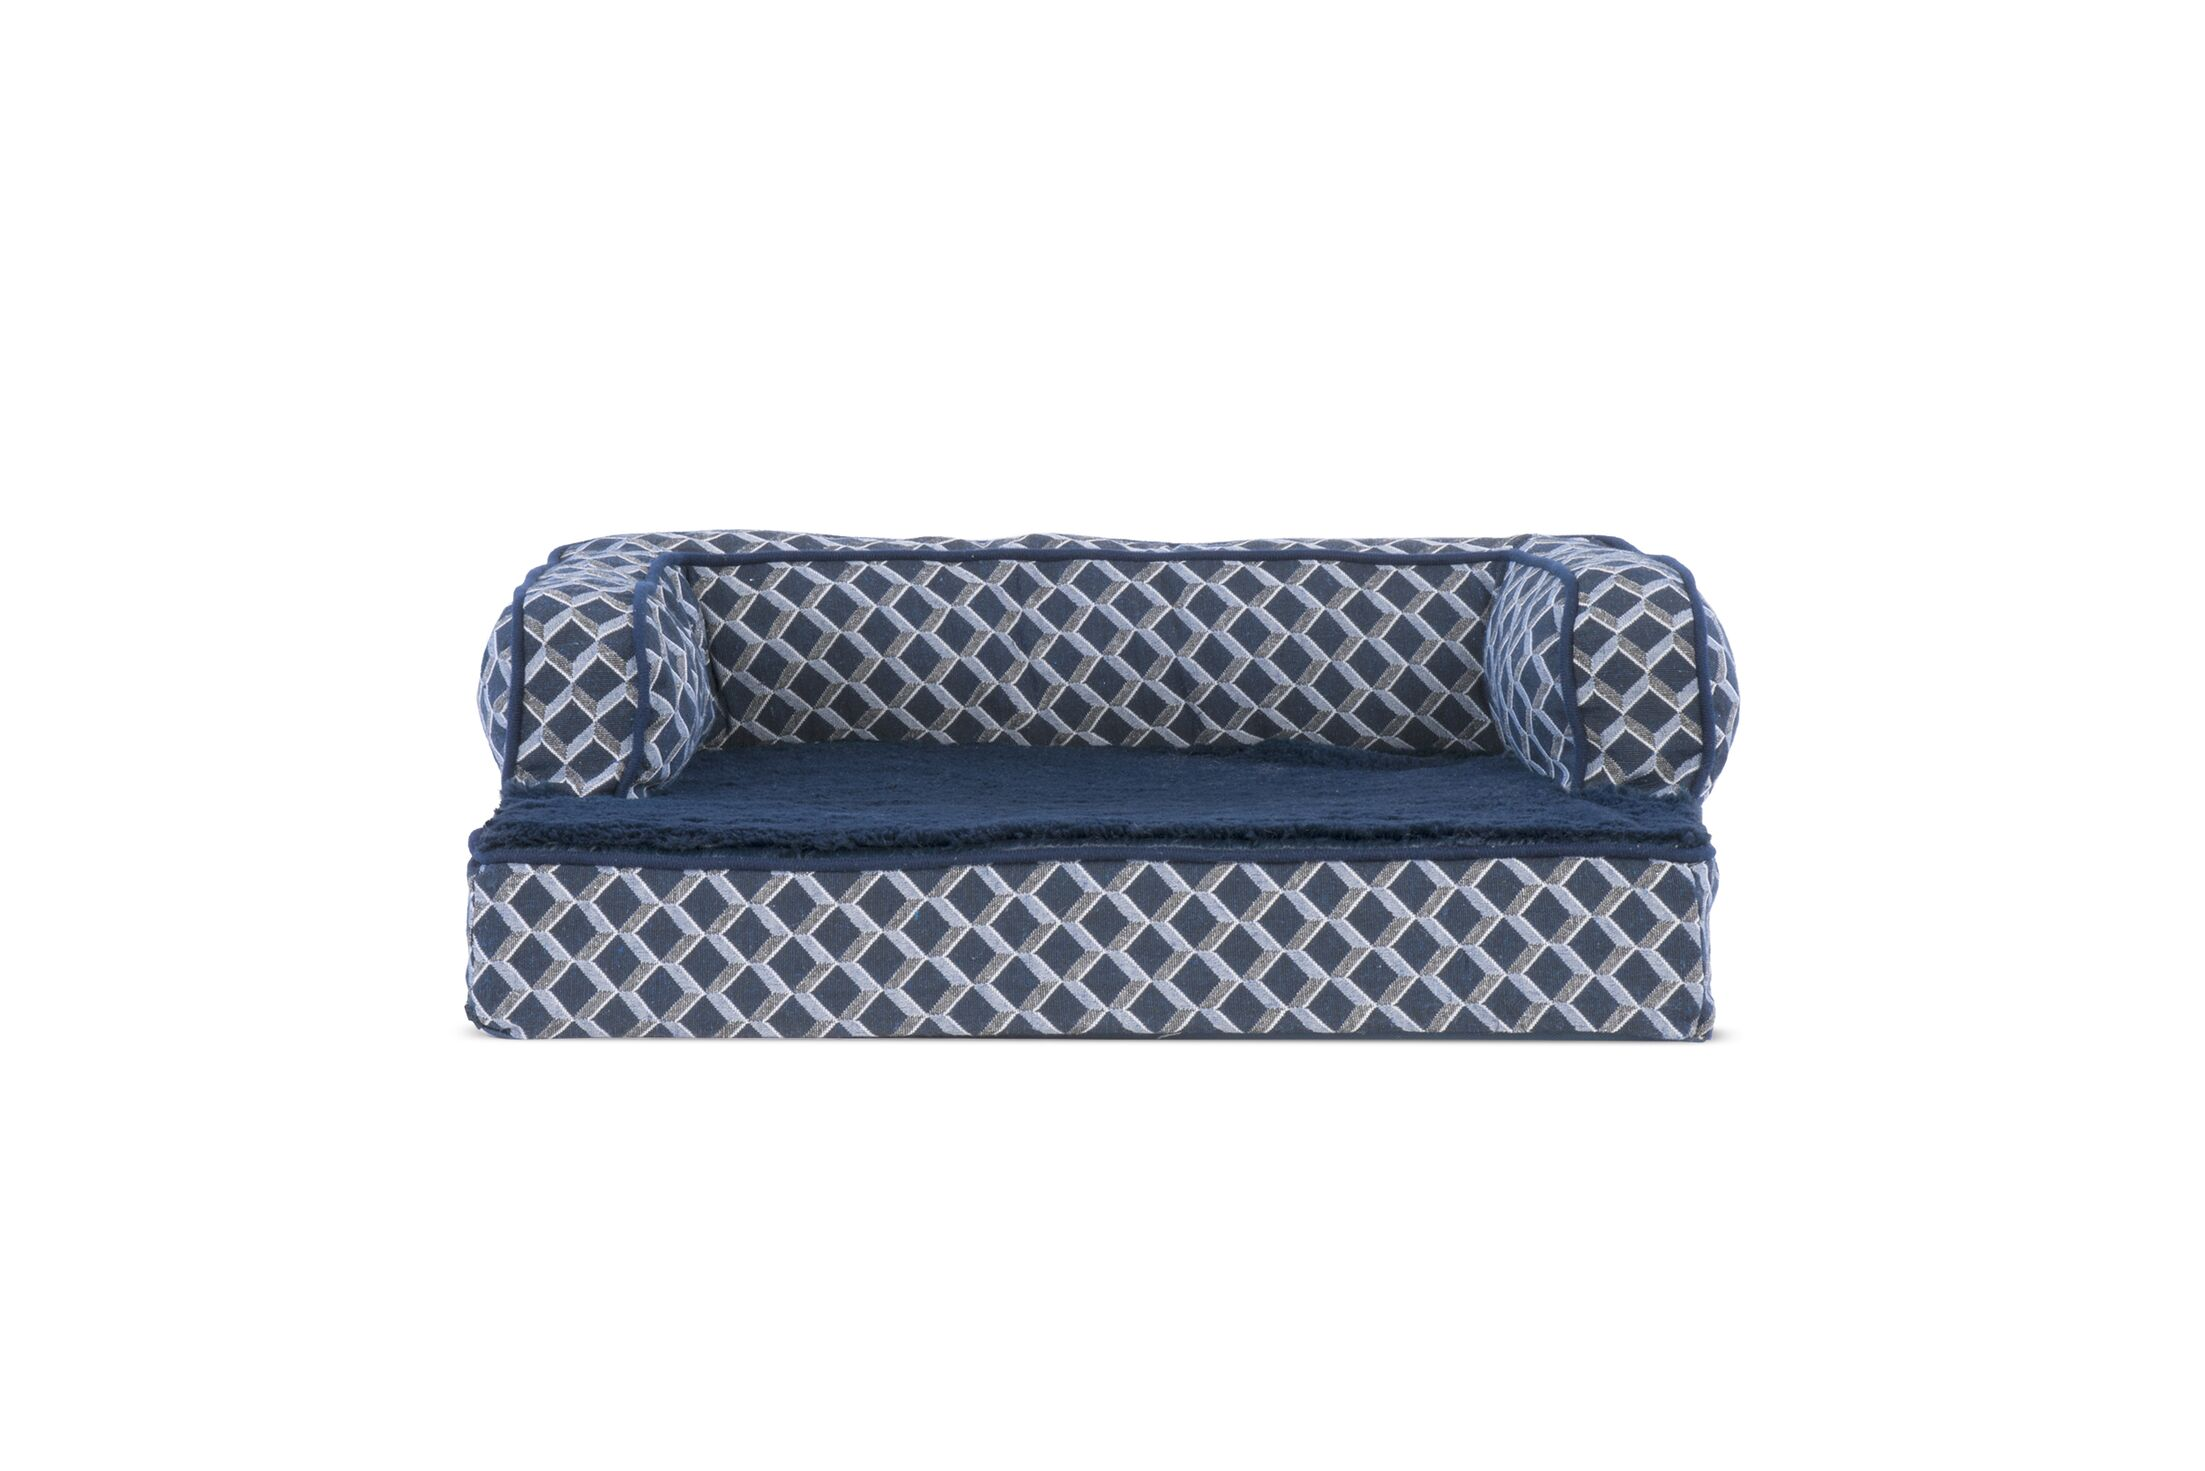 Betsy Comfy Couch Orthopedic Dog Sofa Color: Diamond Blue, Size: 36